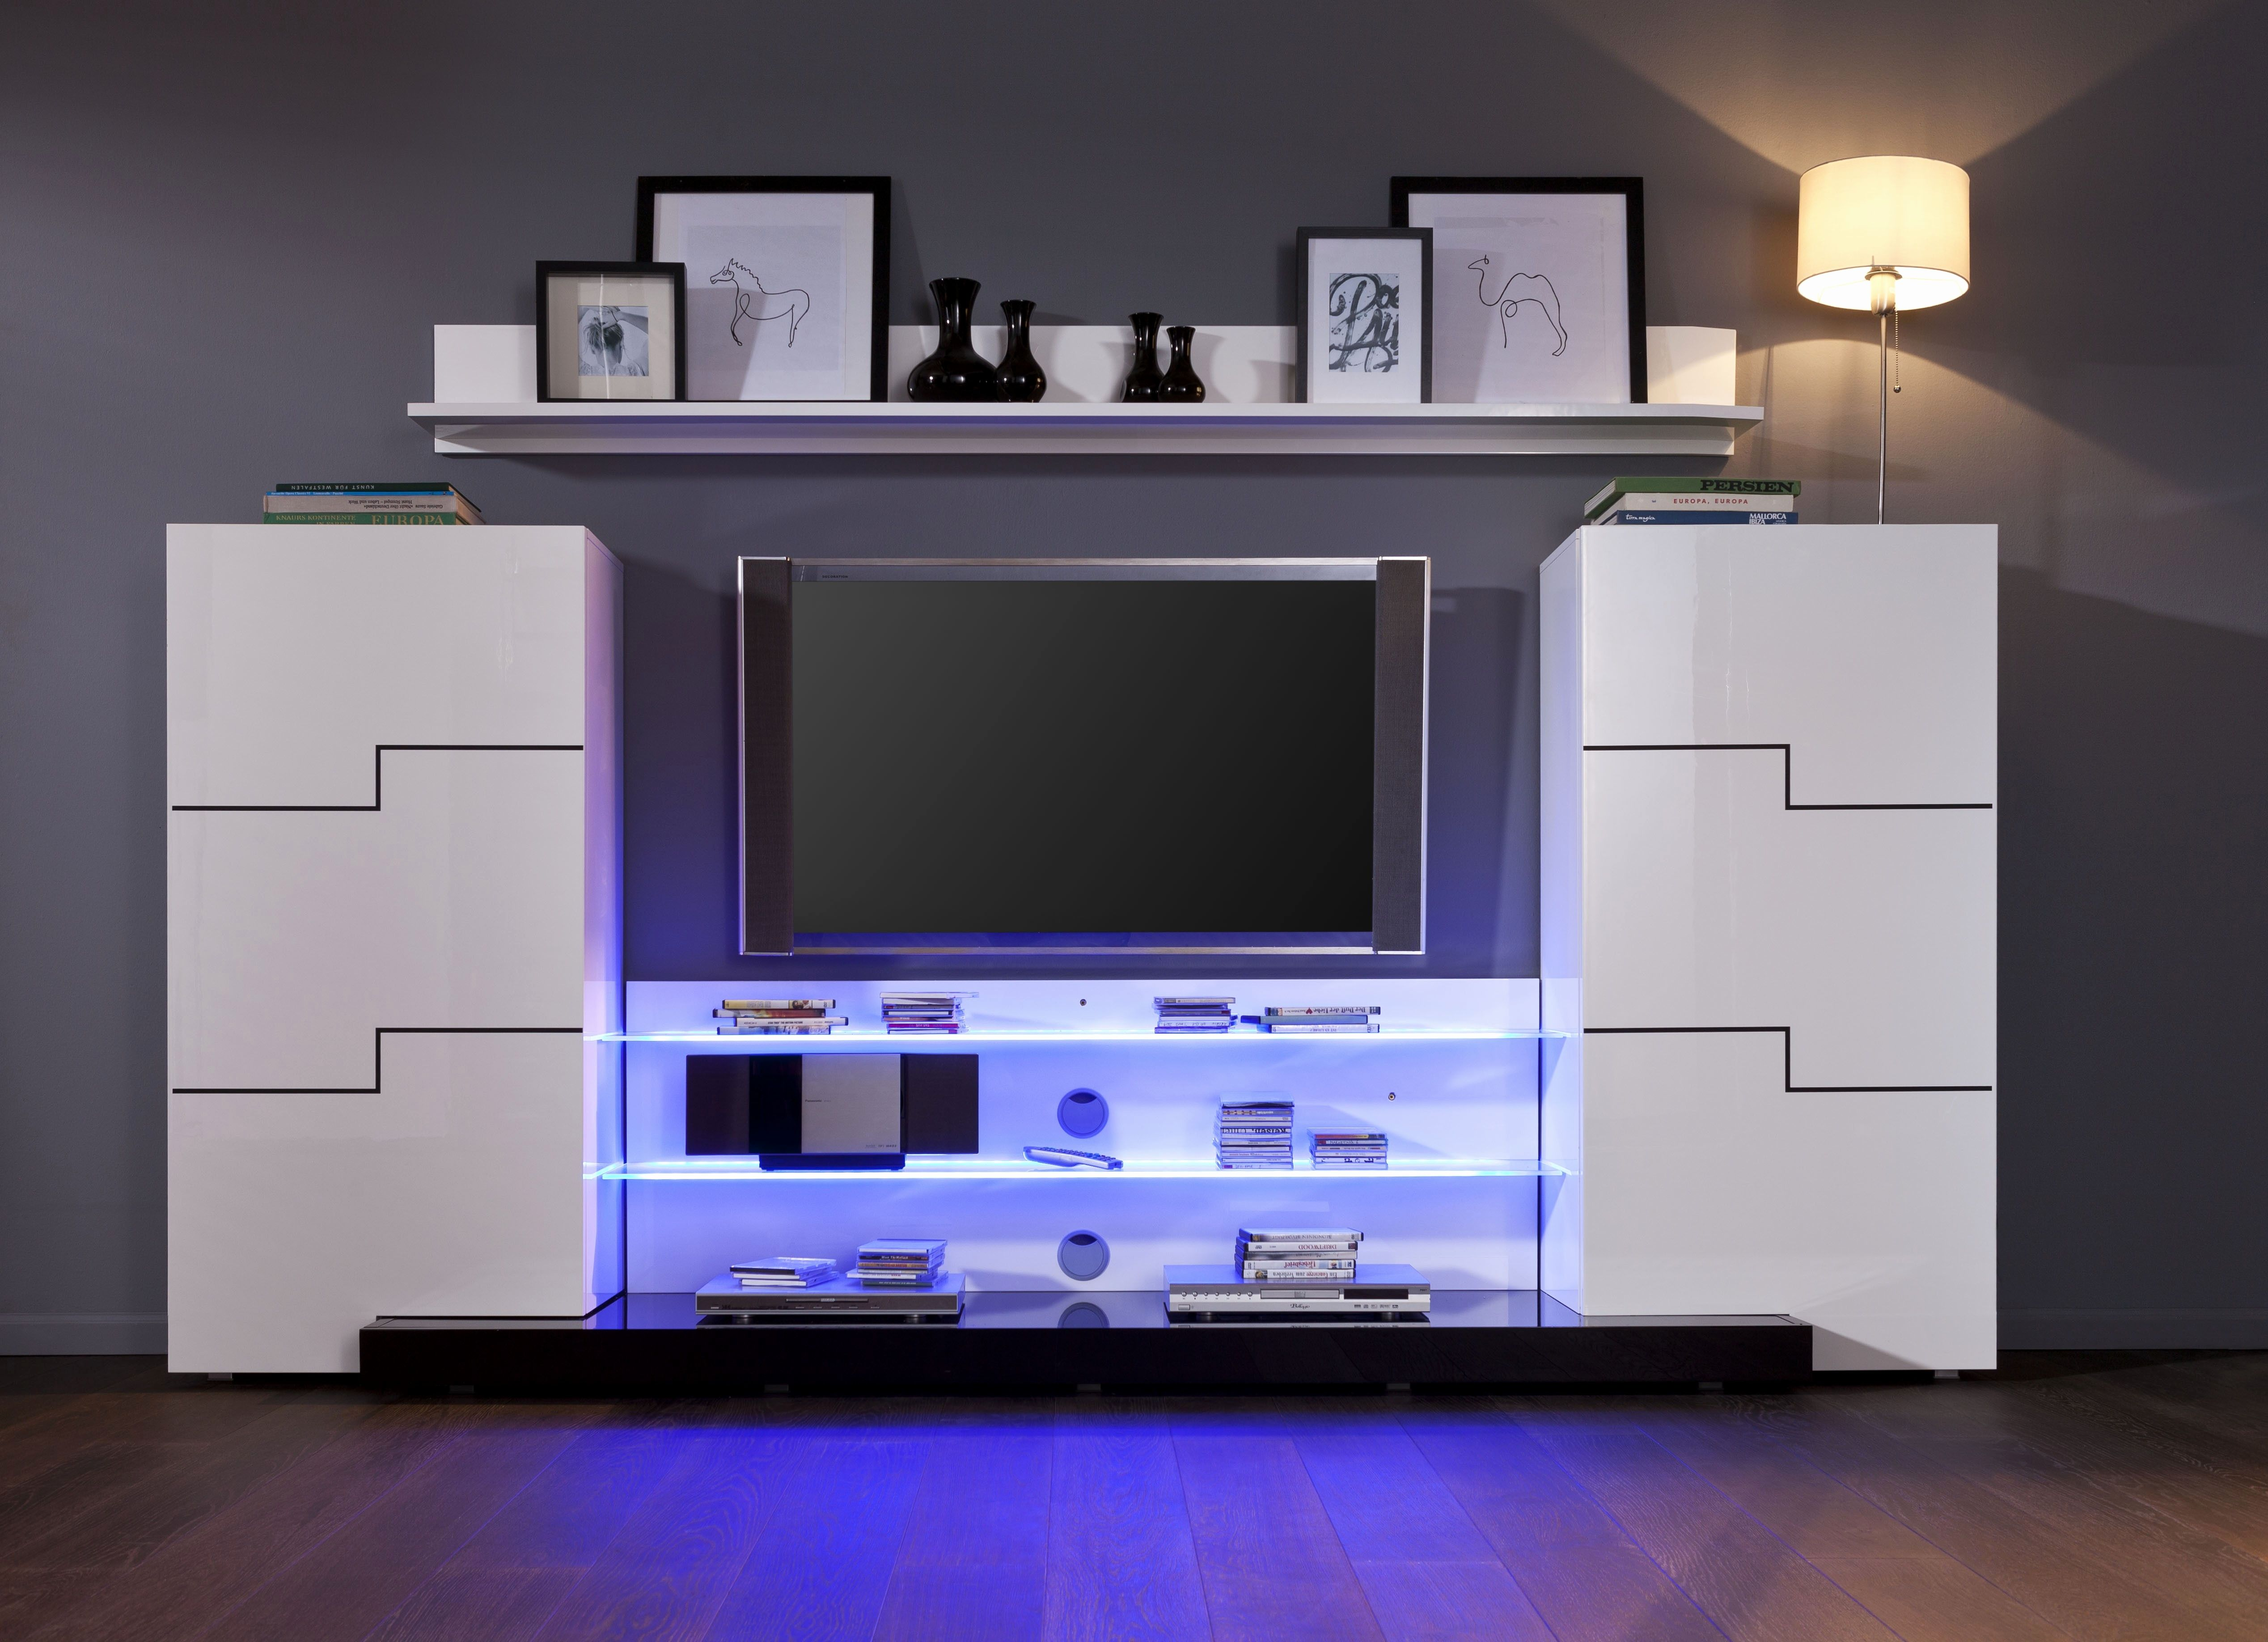 Meuble Tele Fly Awesome Magnifique Meuble Tv Design Pas Cher Blanc Décoration Fran Aise Of Meuble Te Transforming Furniture Commercial Interiors Cool Furniture